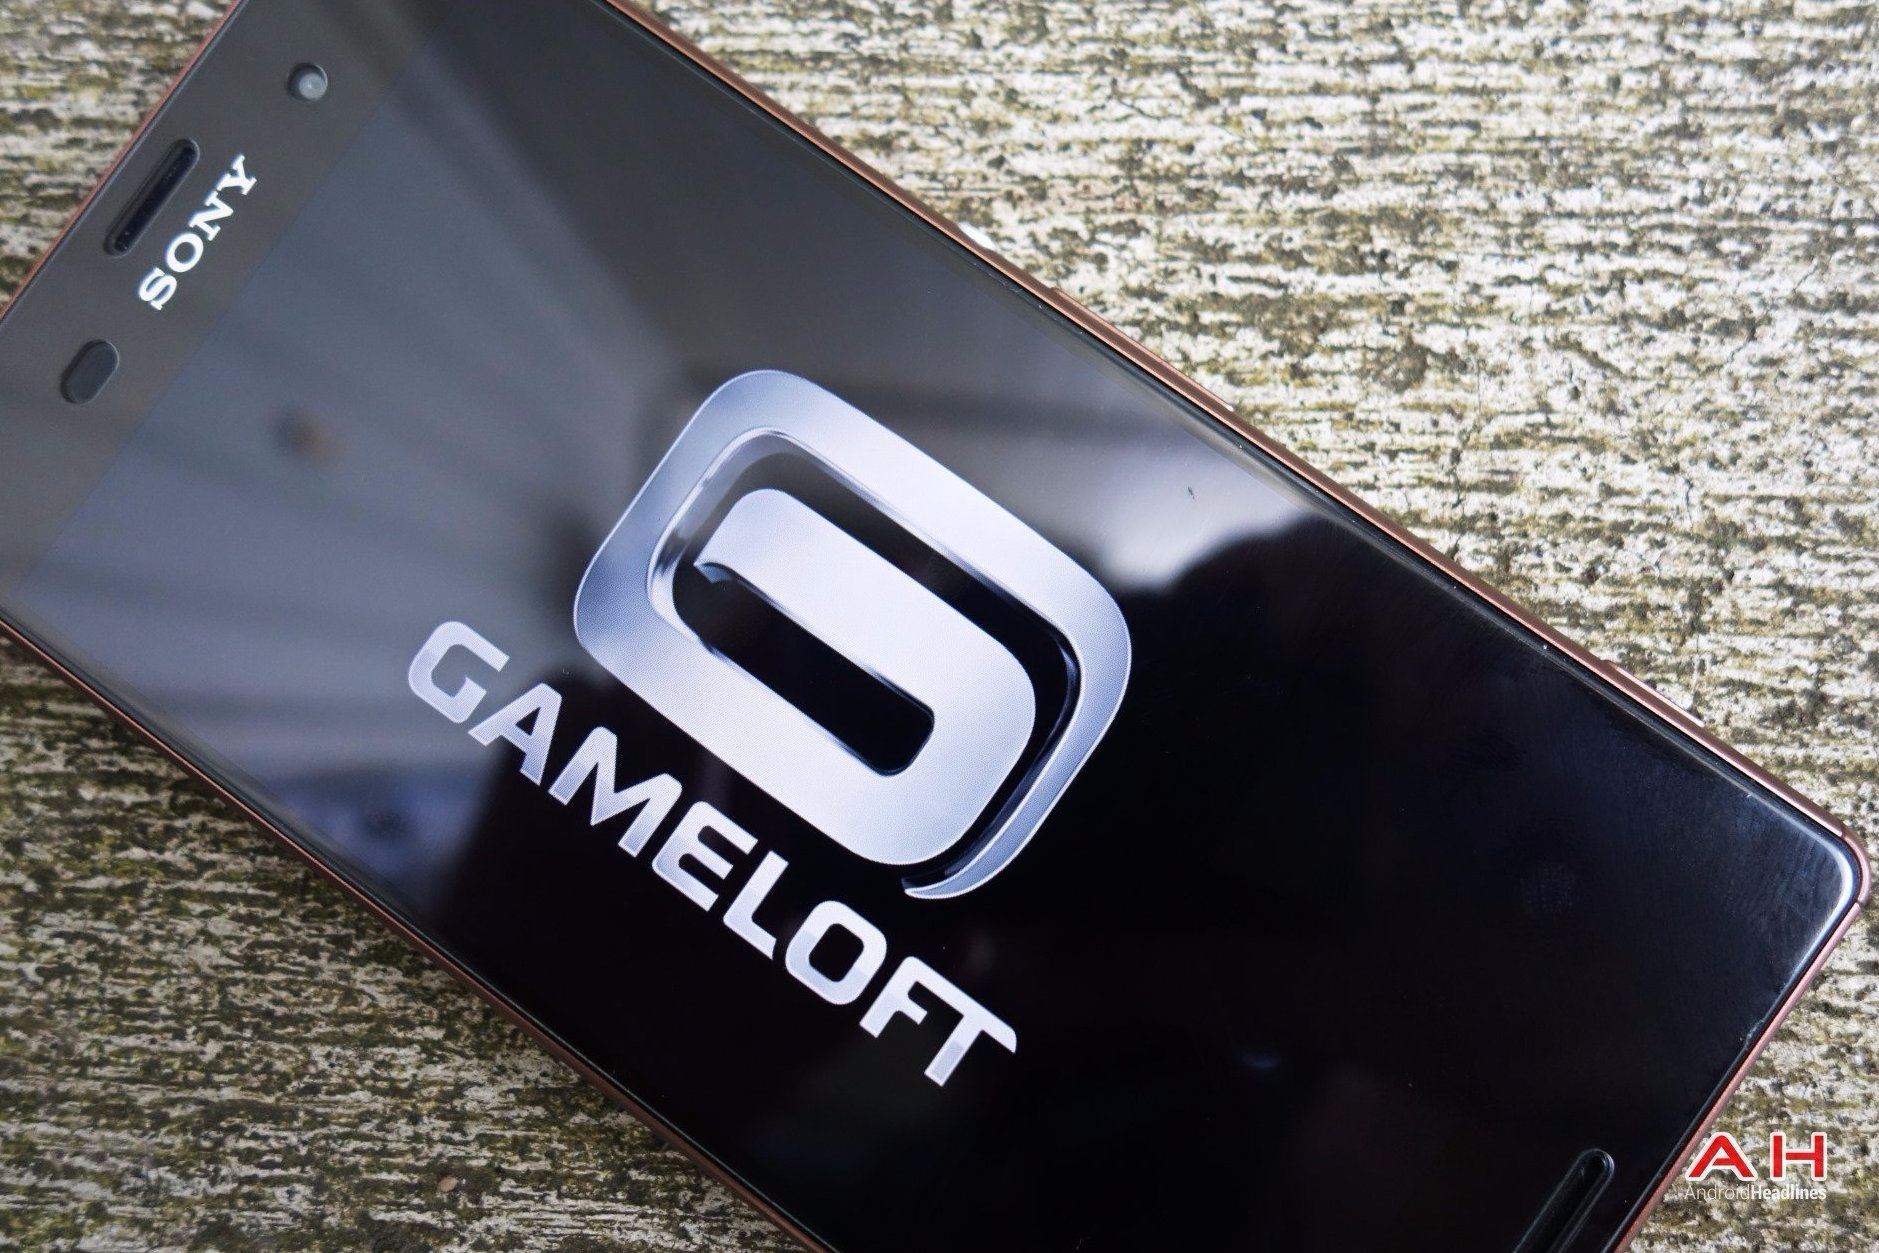 Modojo | Sorry, Gameloft Won't Be Doing Premium Titles Anymore